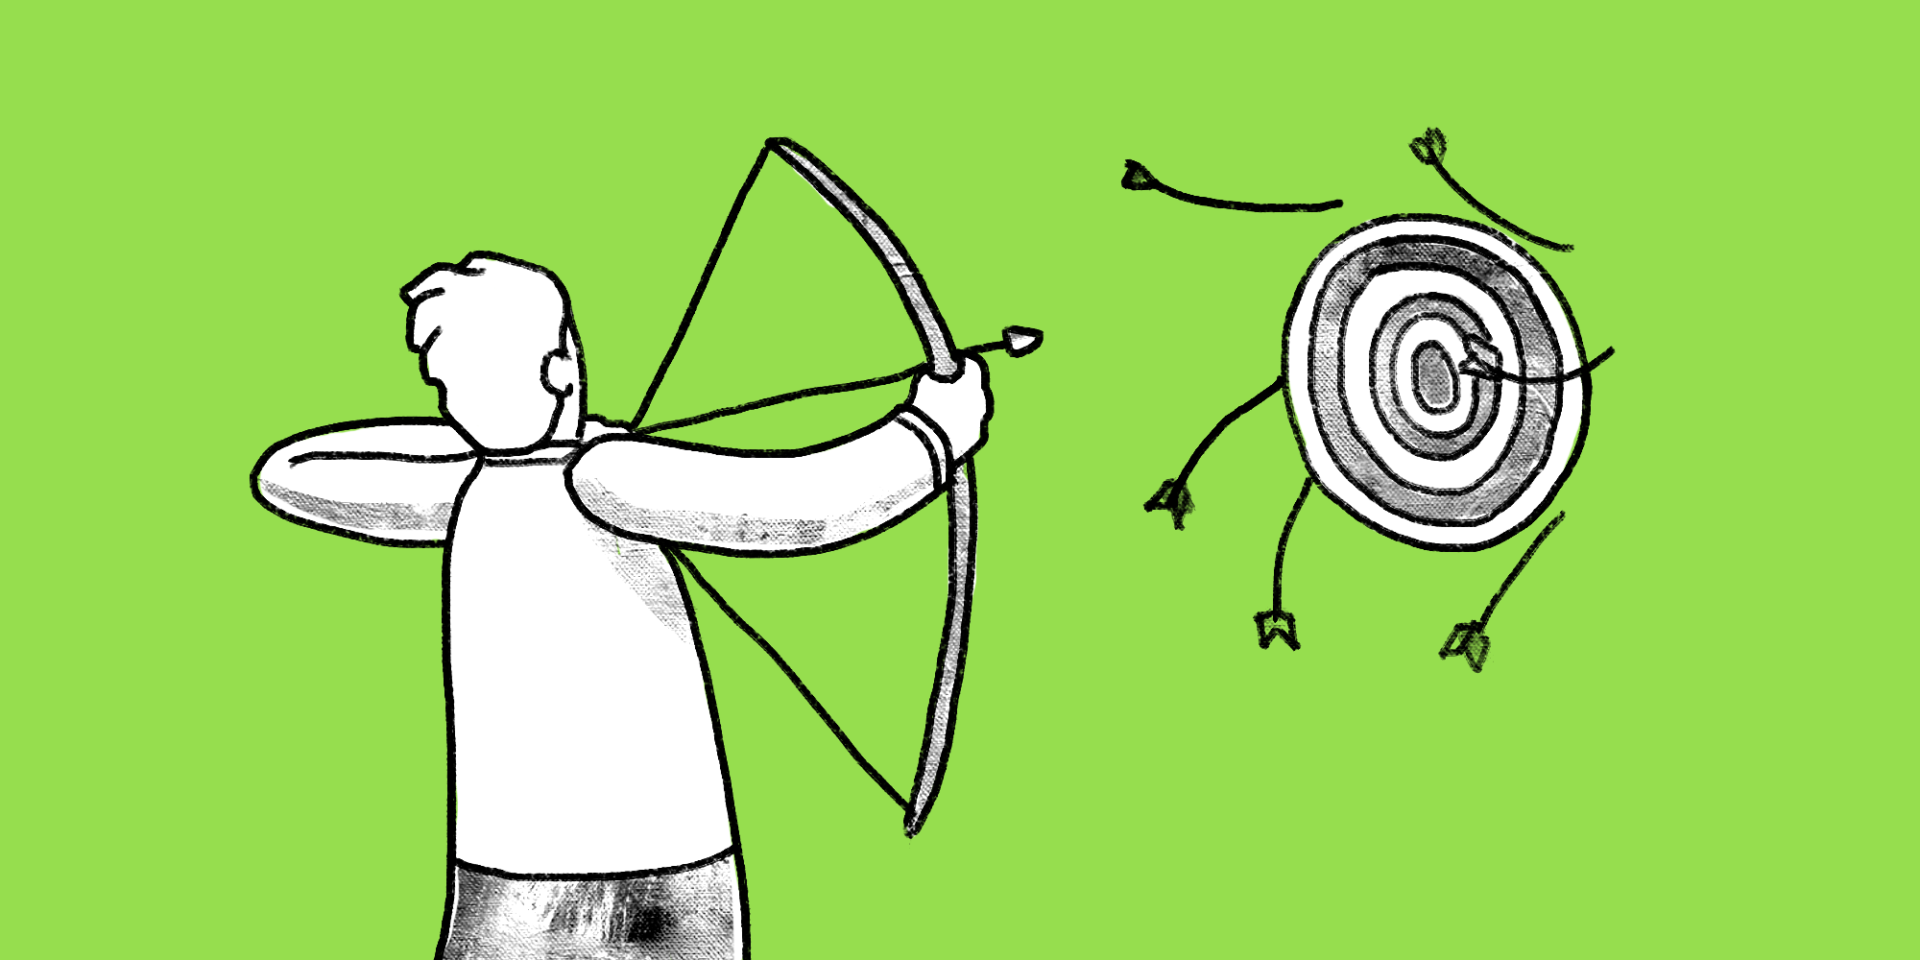 Illustration of a man using a bow to shoot arrows to a target